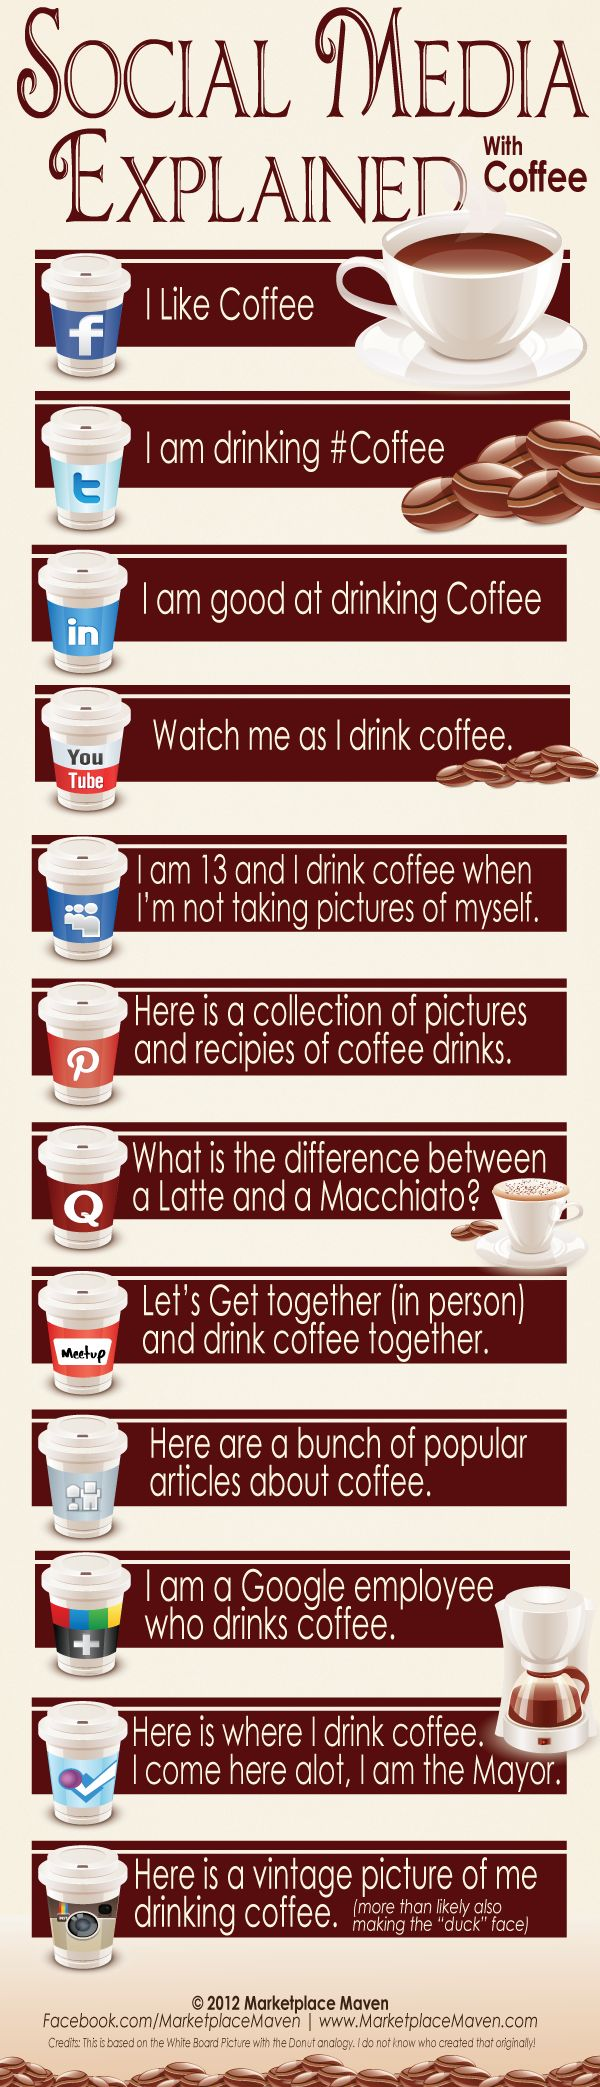 #Social Media Explained With Coffee. #Infographic